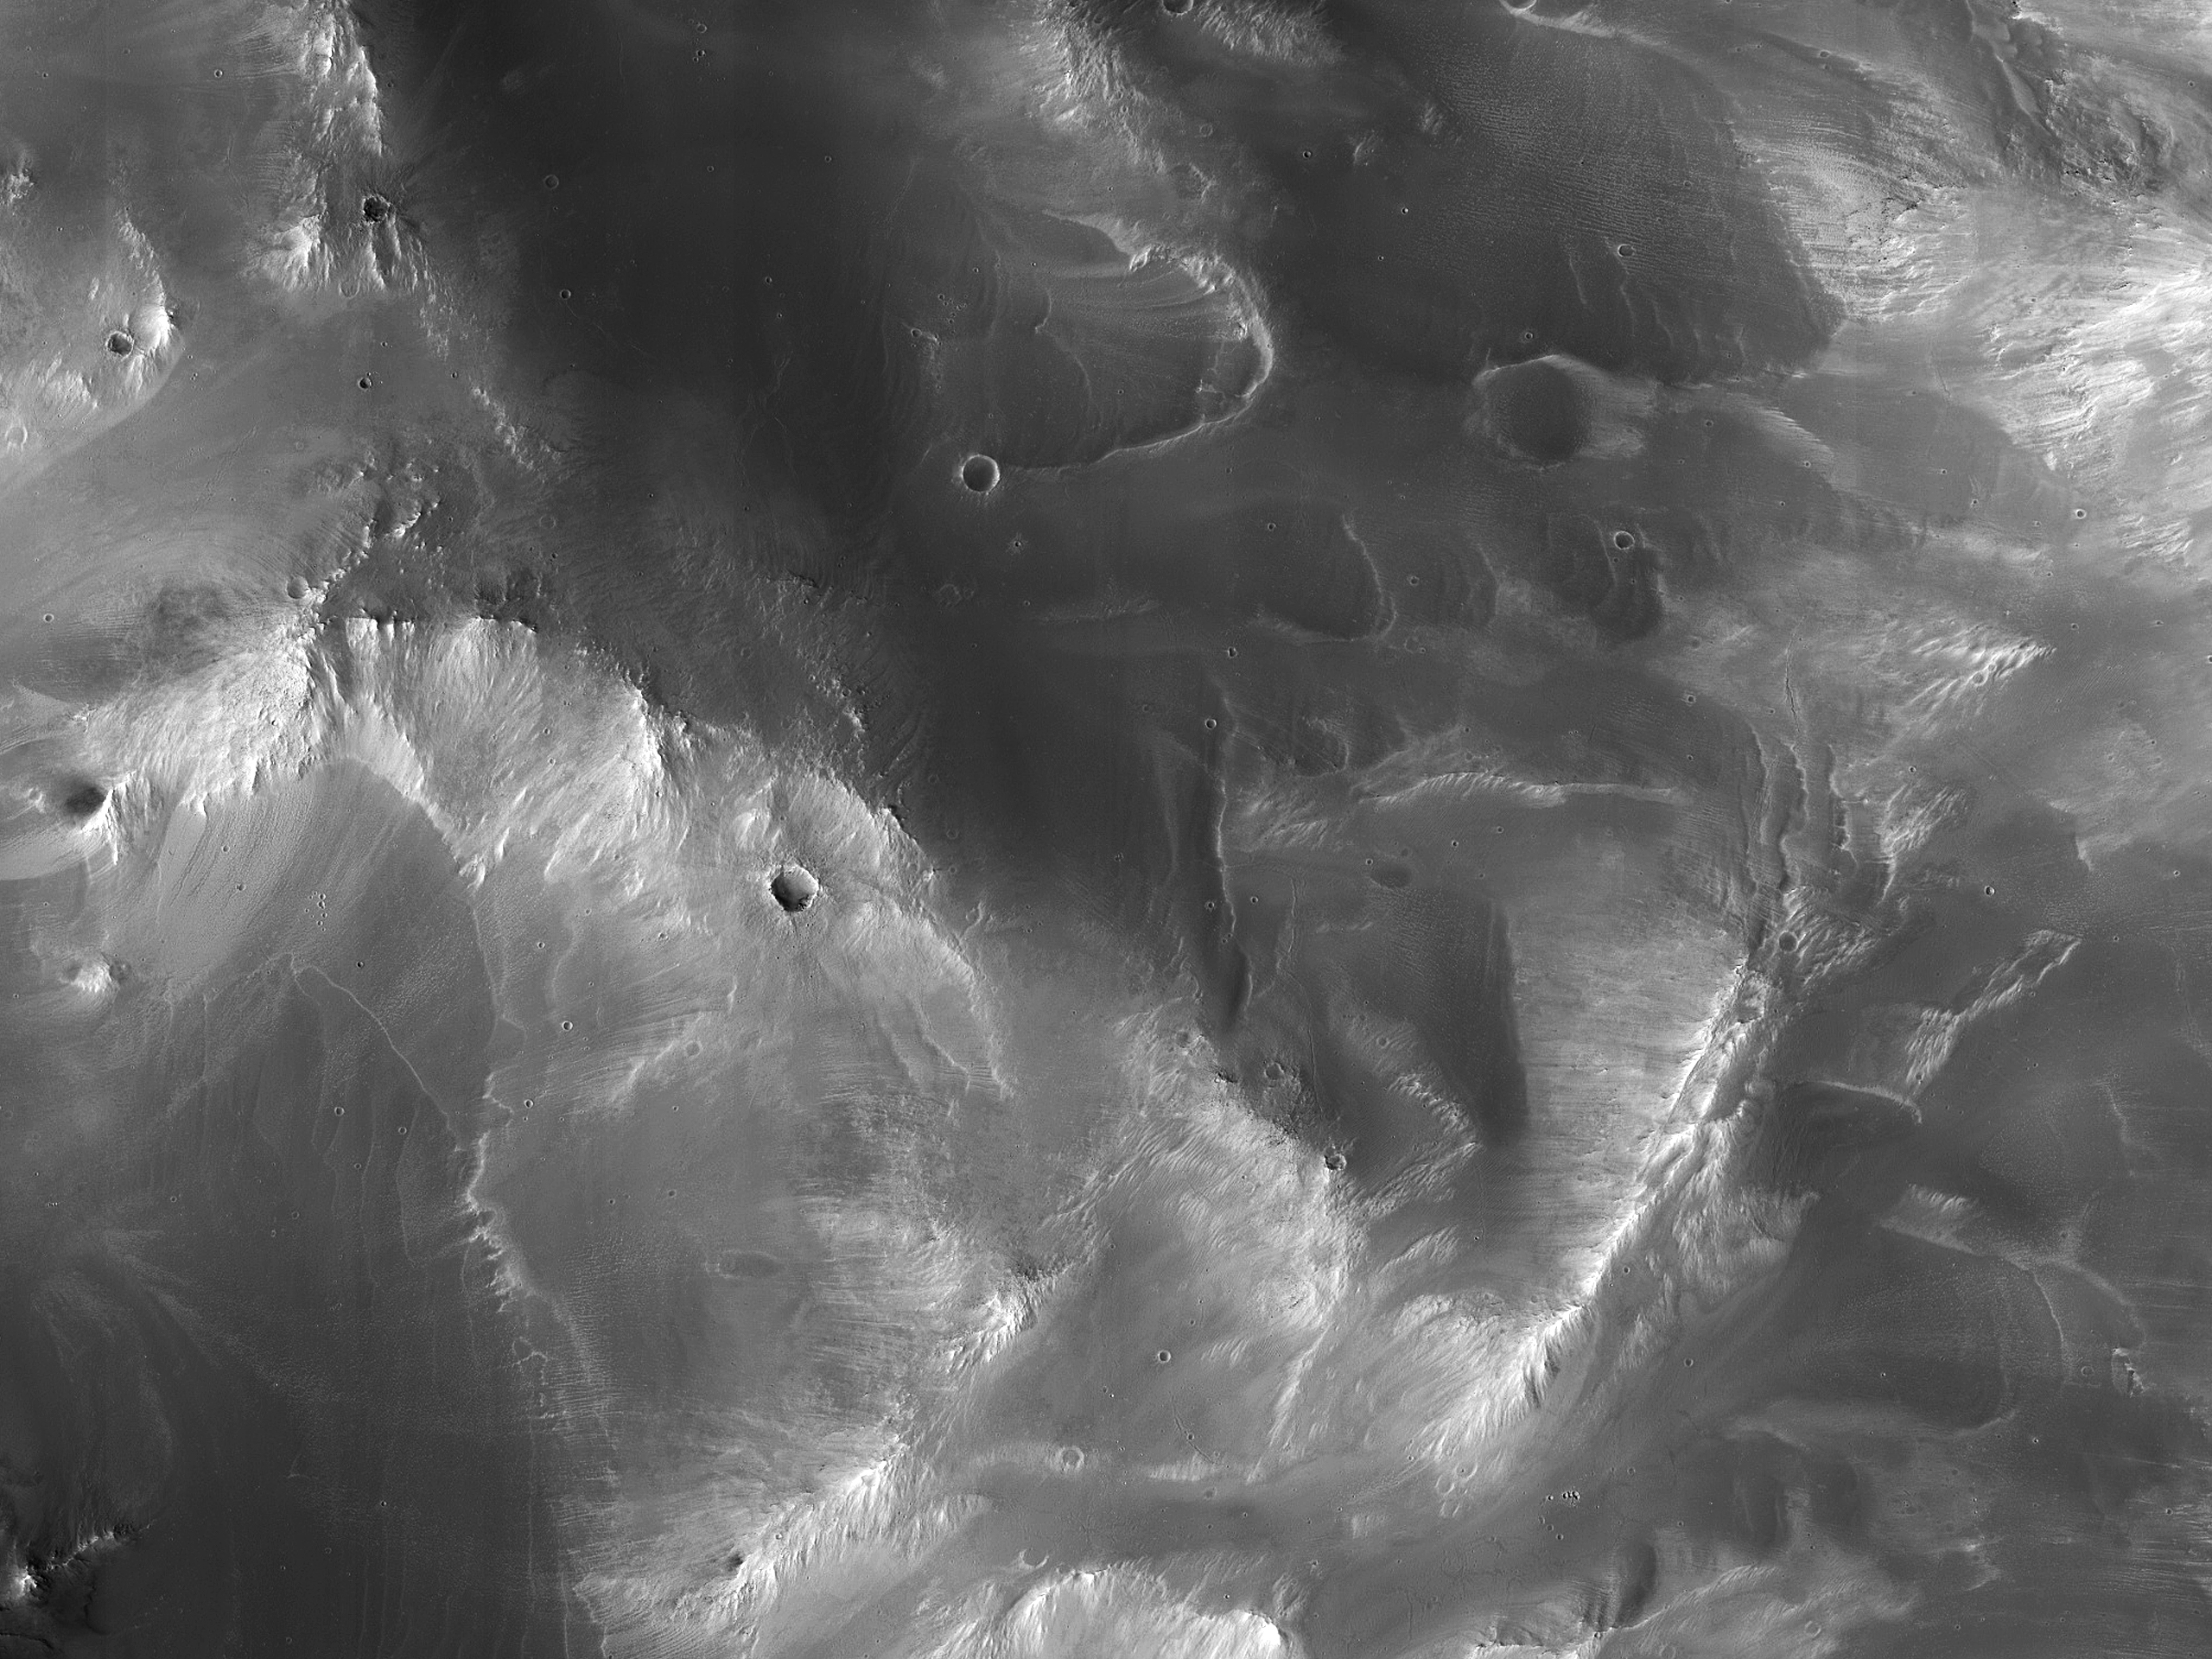 A Crater in Syrtis Major Planum